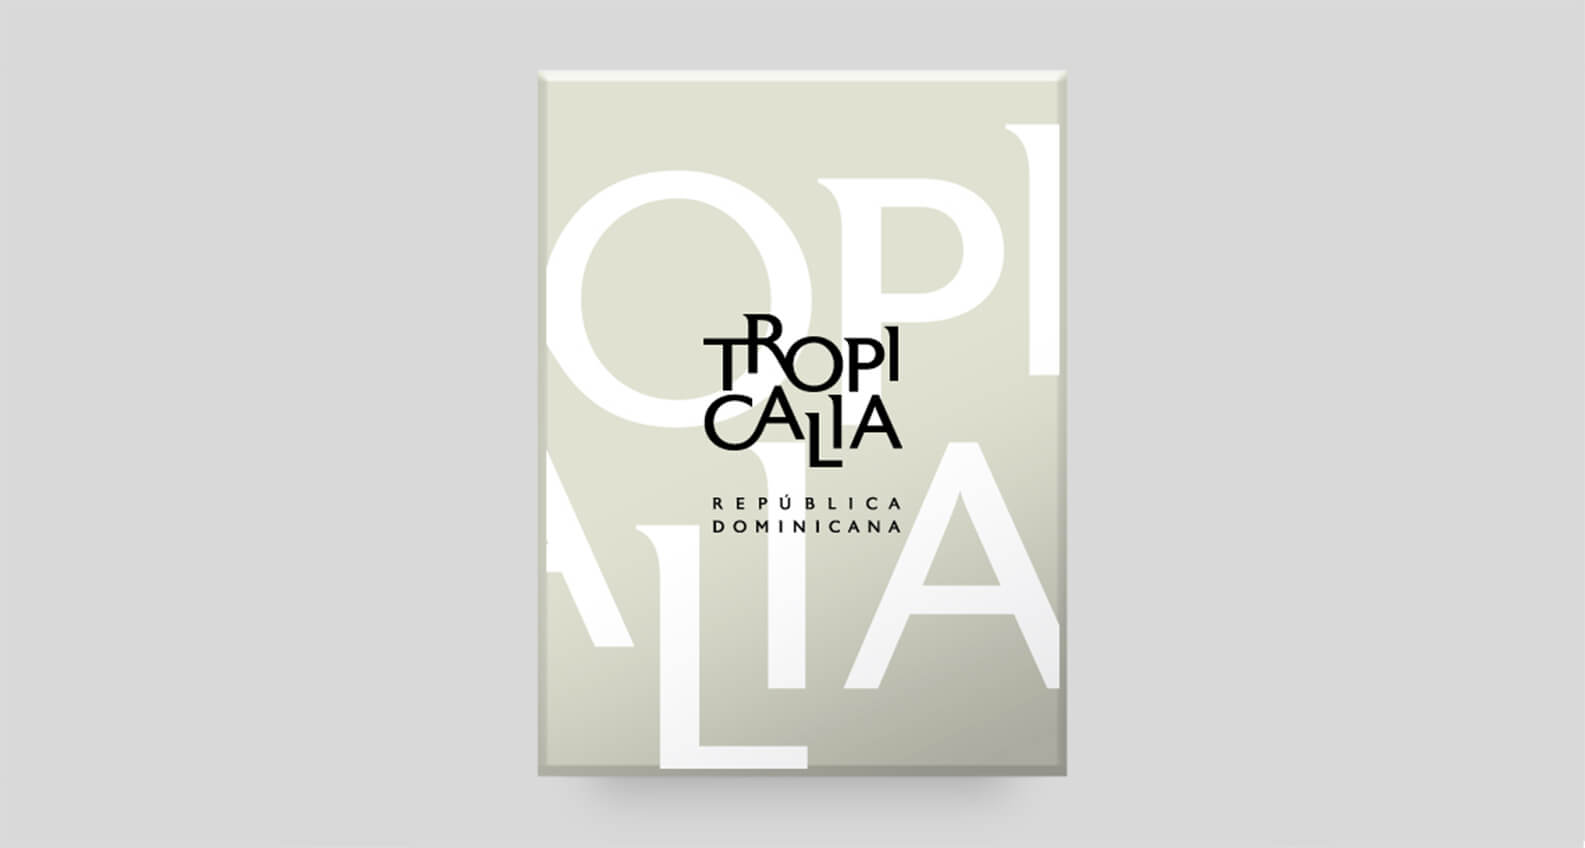 Tropicalia book cover design by Jacober Creative